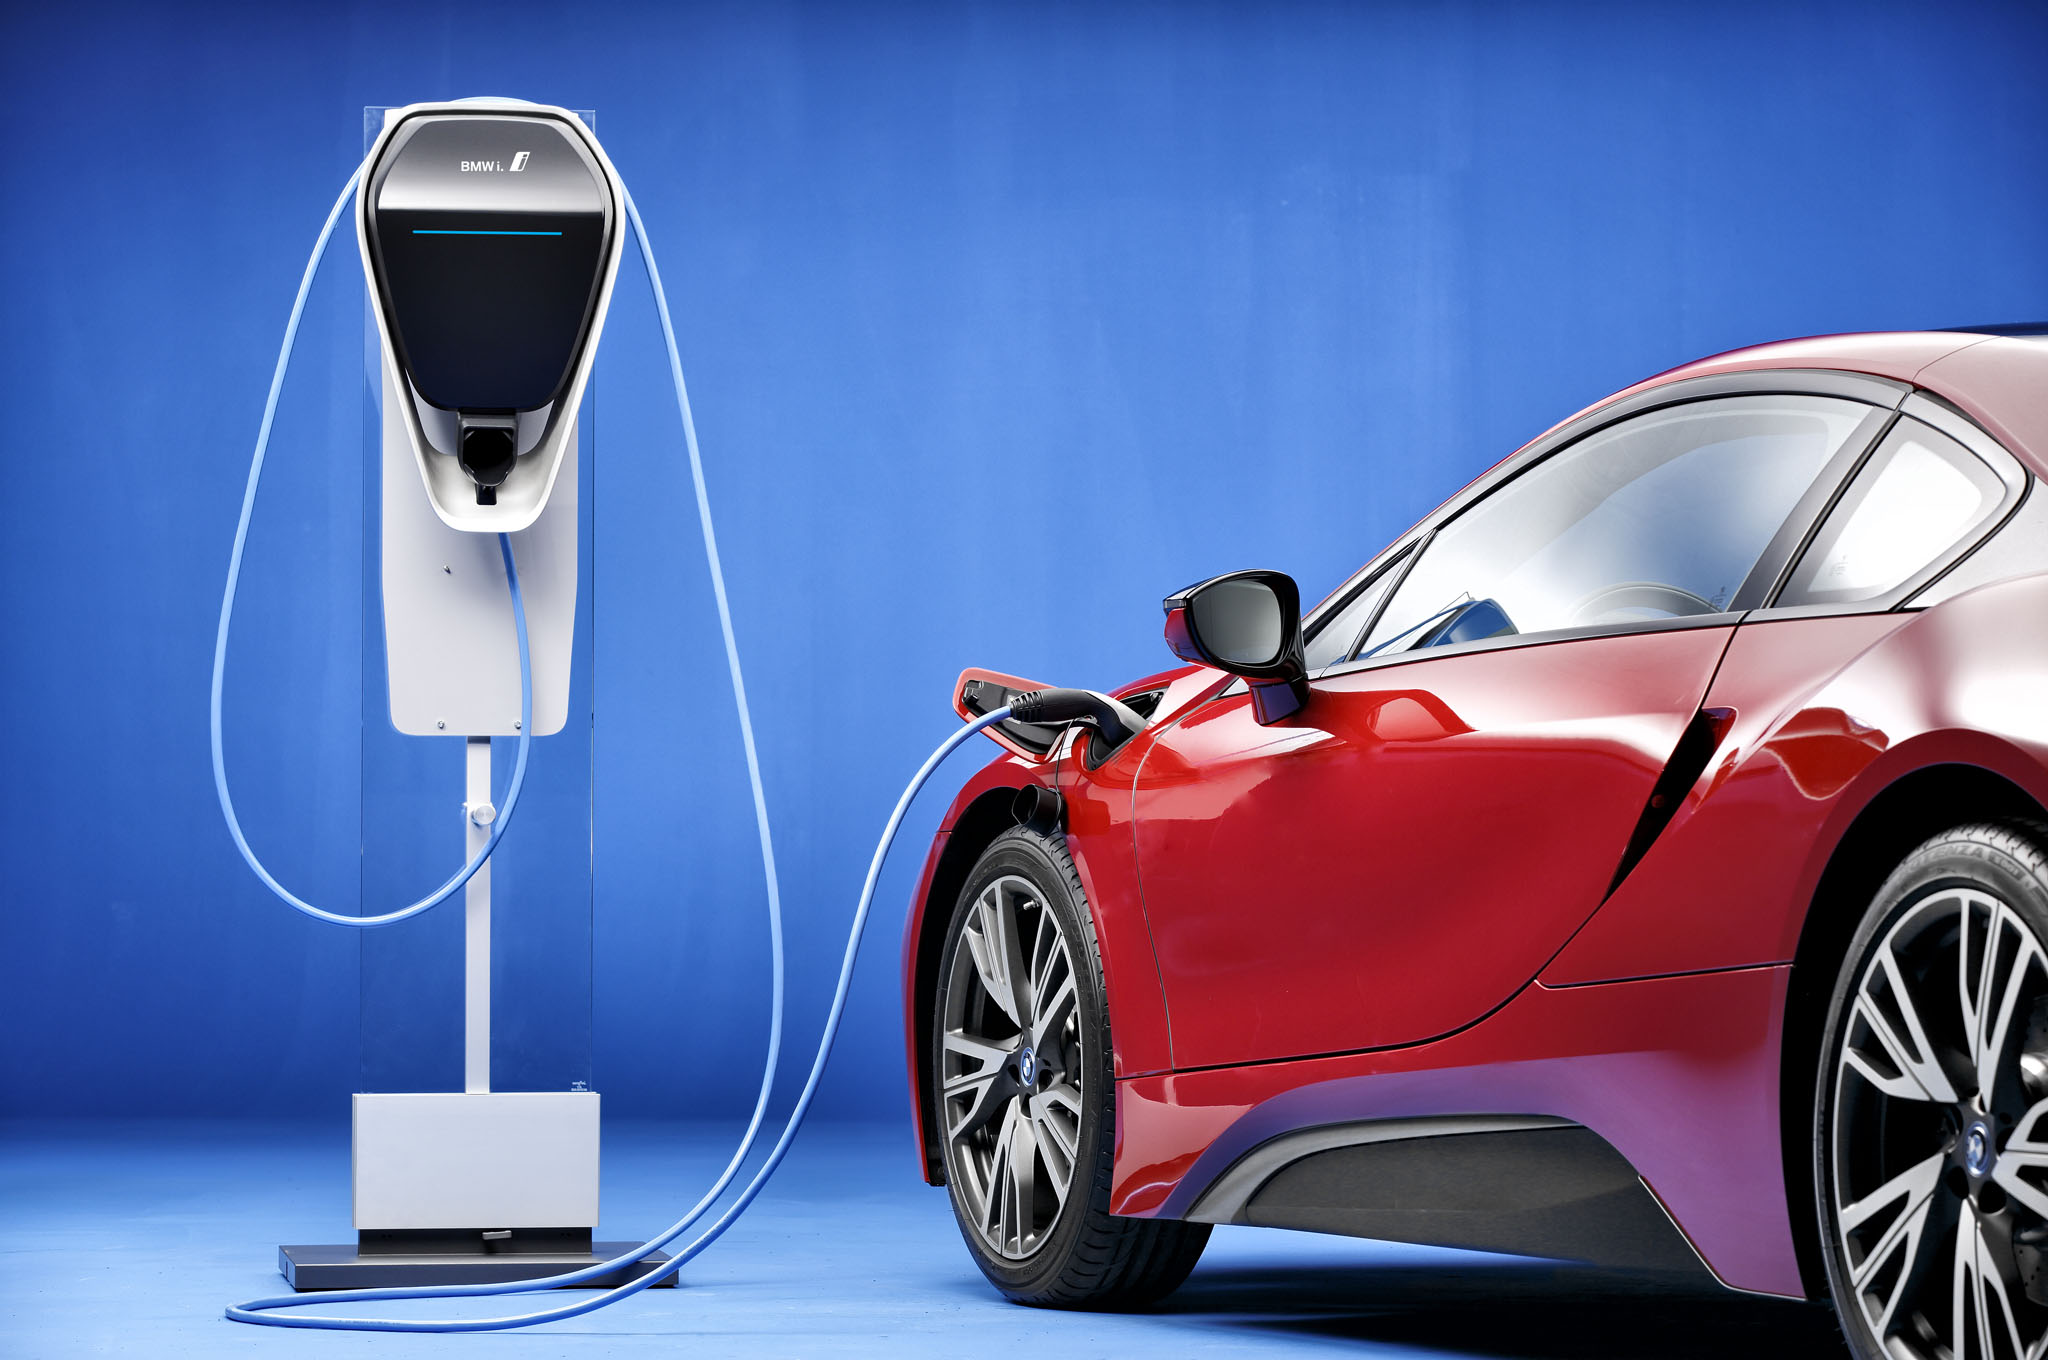 gb integrated next charge plant with lighting system light electric to pioneering and united lamppost vehicle charging showcases mini bmw street kingdom article oxford detail